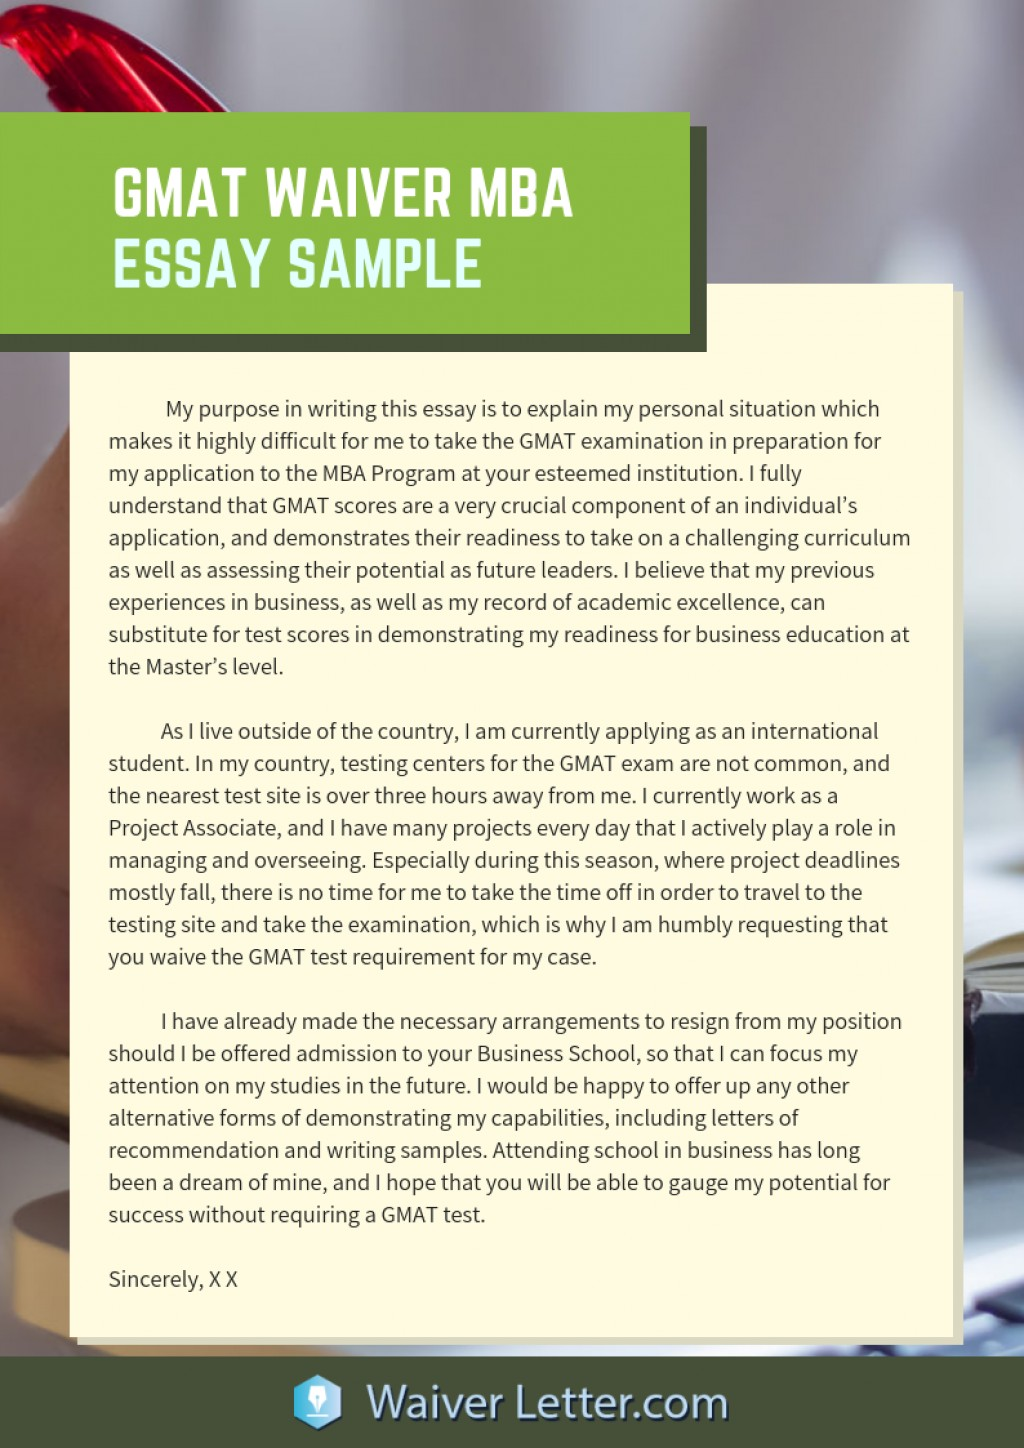 012 Essay Example Gmat Waiver Mba Shocking Sample Topics Awa Essays Free Download Large